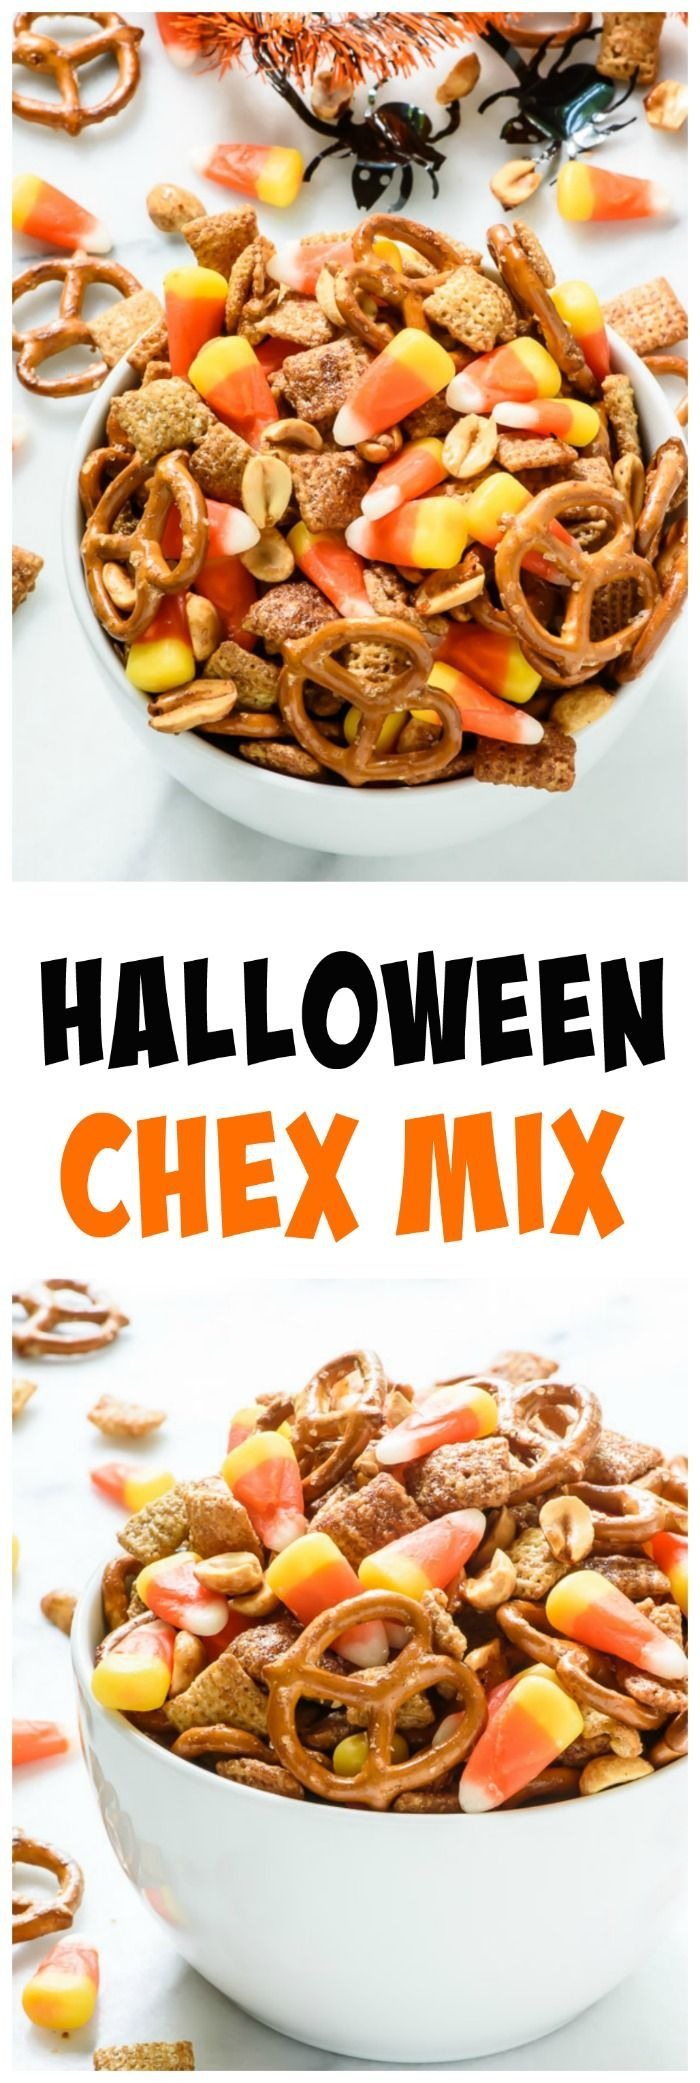 Check out Halloween Chex Mix. It's so easy to make! | Halloween ...